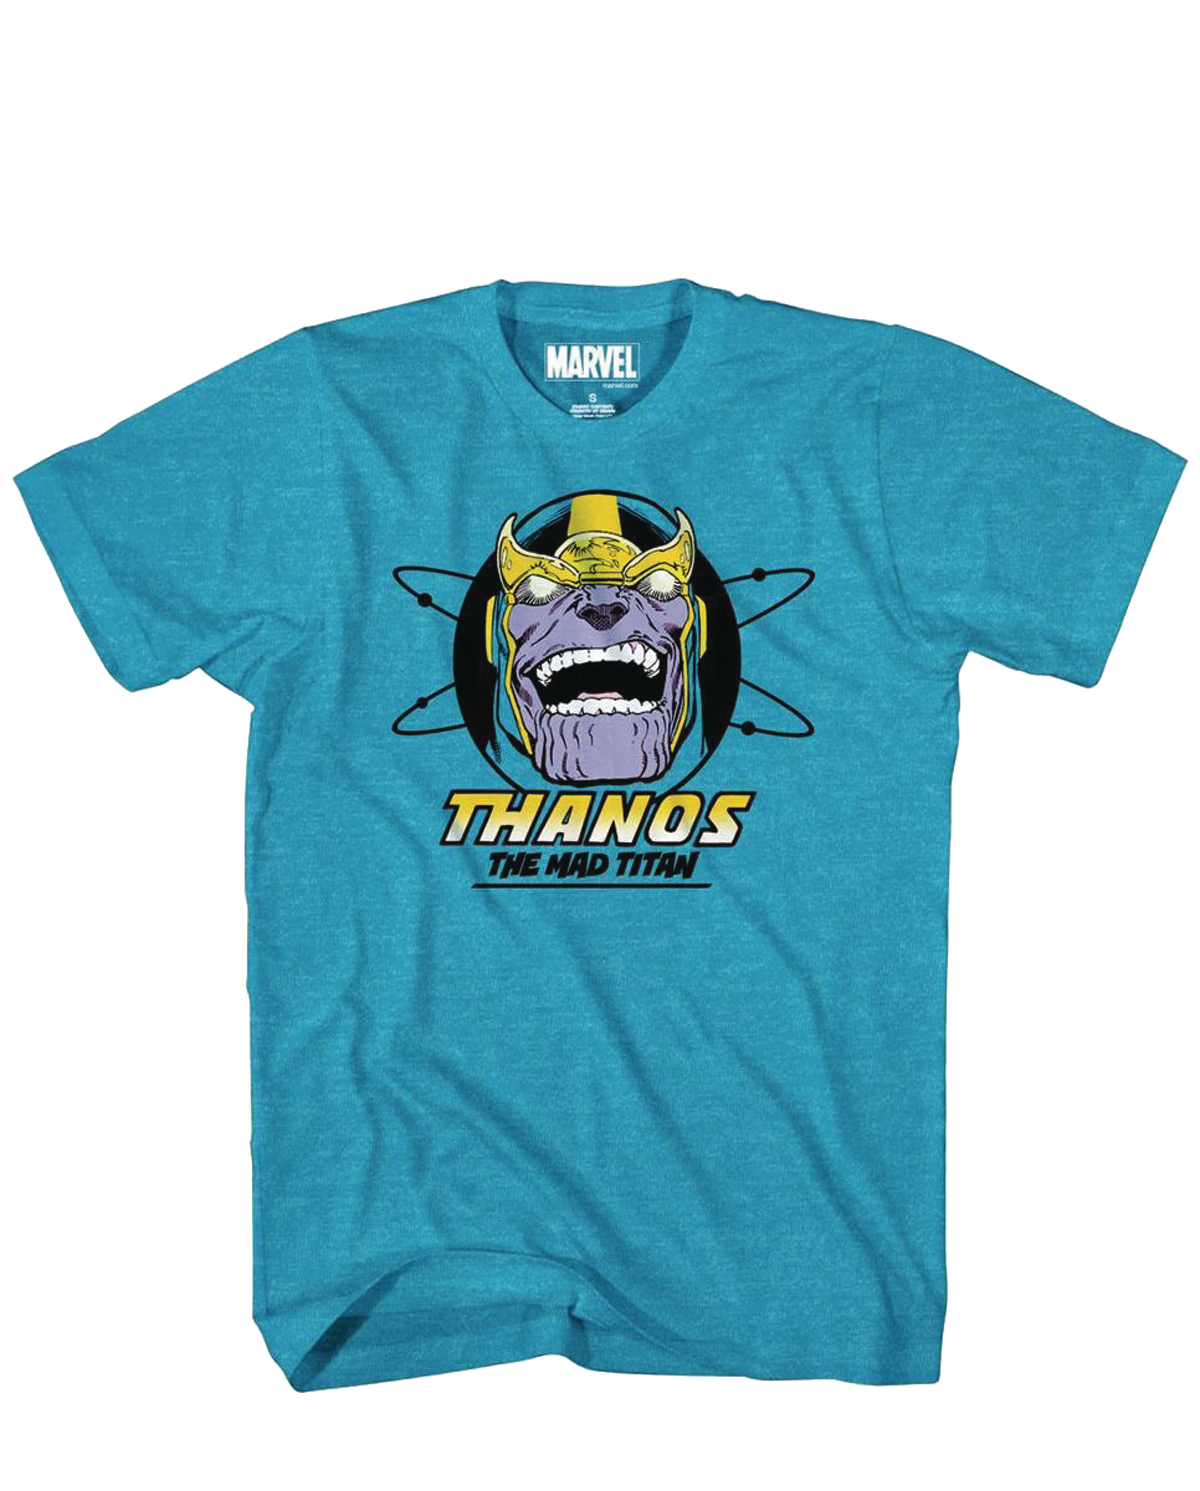 MARVEL THANOS TEETH PX SAPPHIRE HEATHER T/S SM